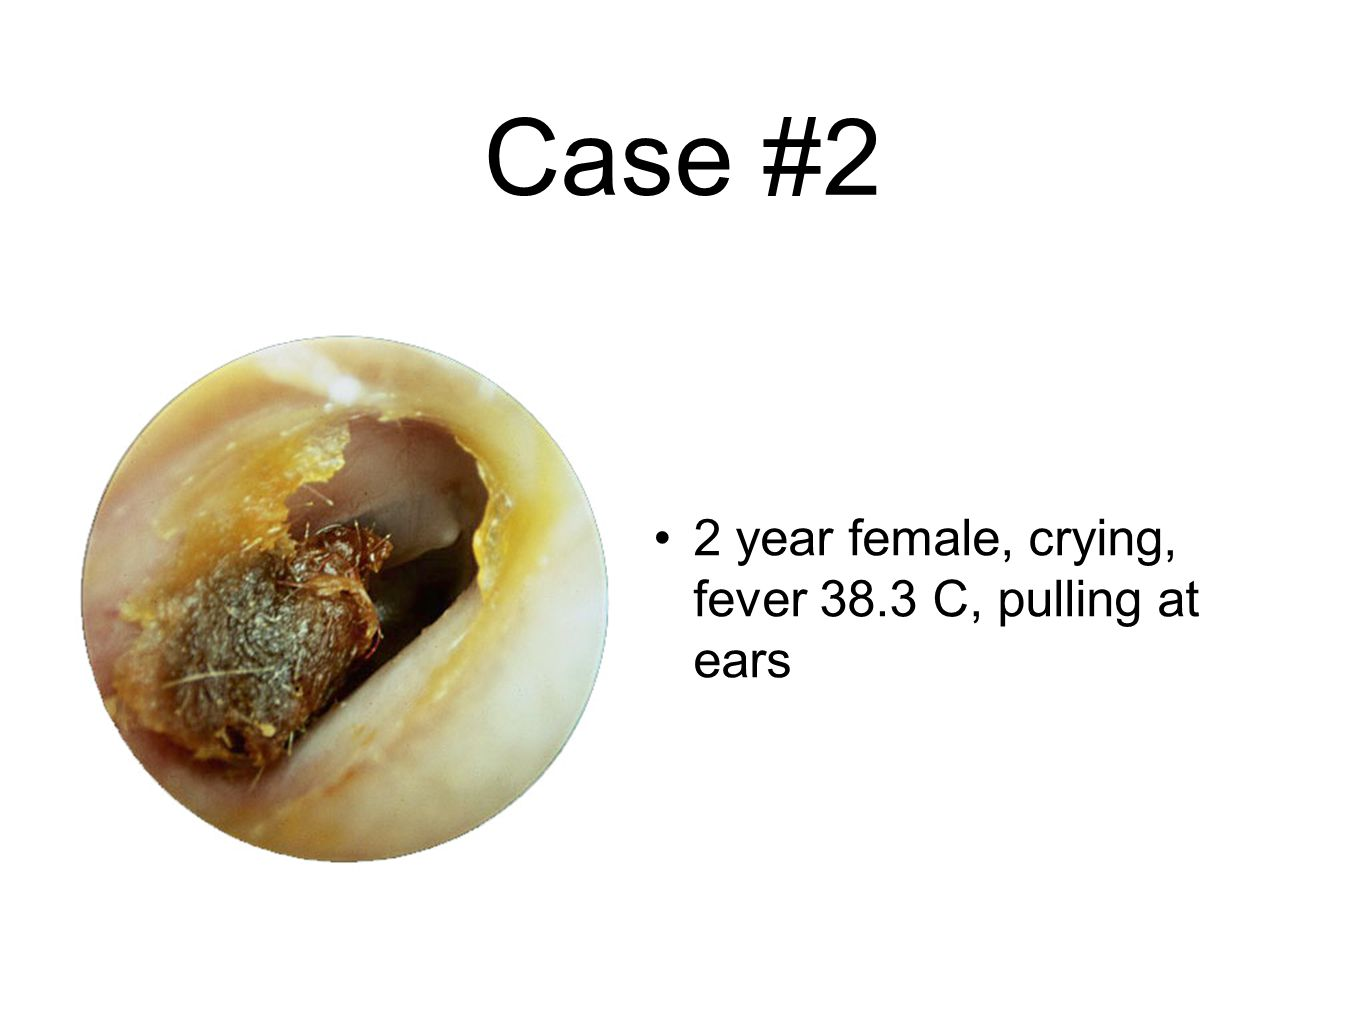 Case #2 2 year female, crying, fever 38.3 C, pulling at ears